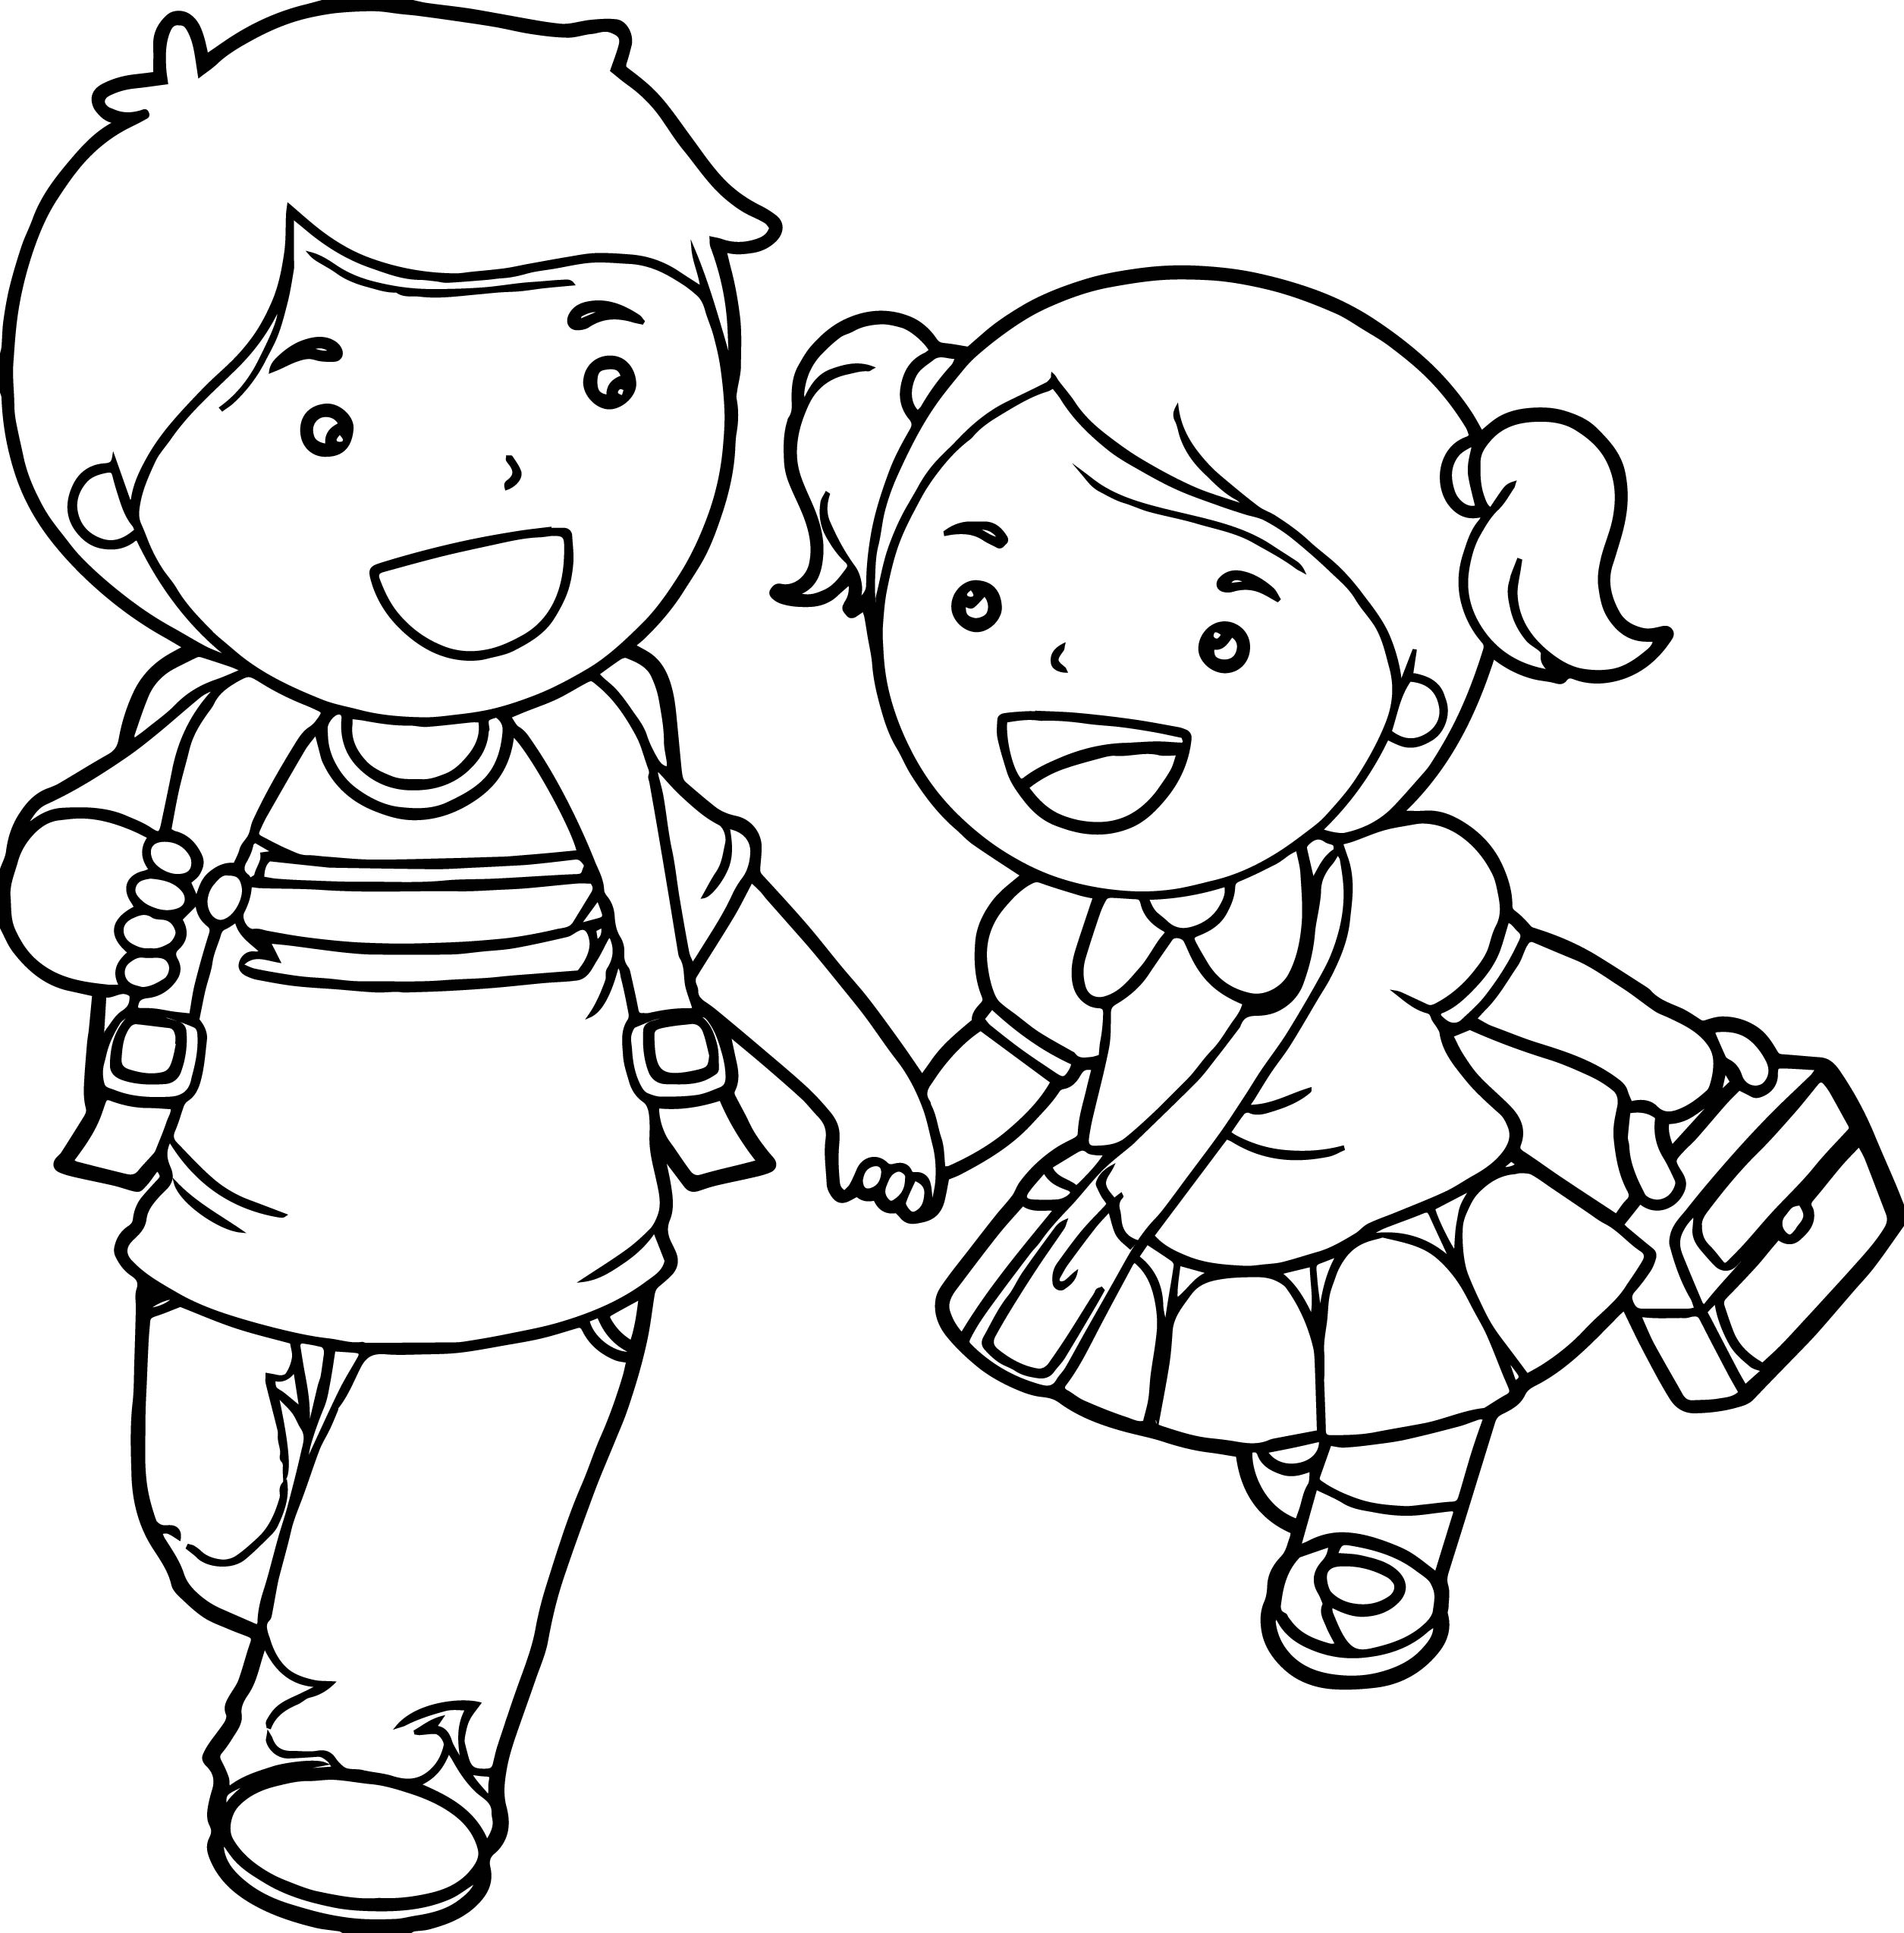 January Coloring Pages - Best Coloring Pages For Kids | 2548x2510